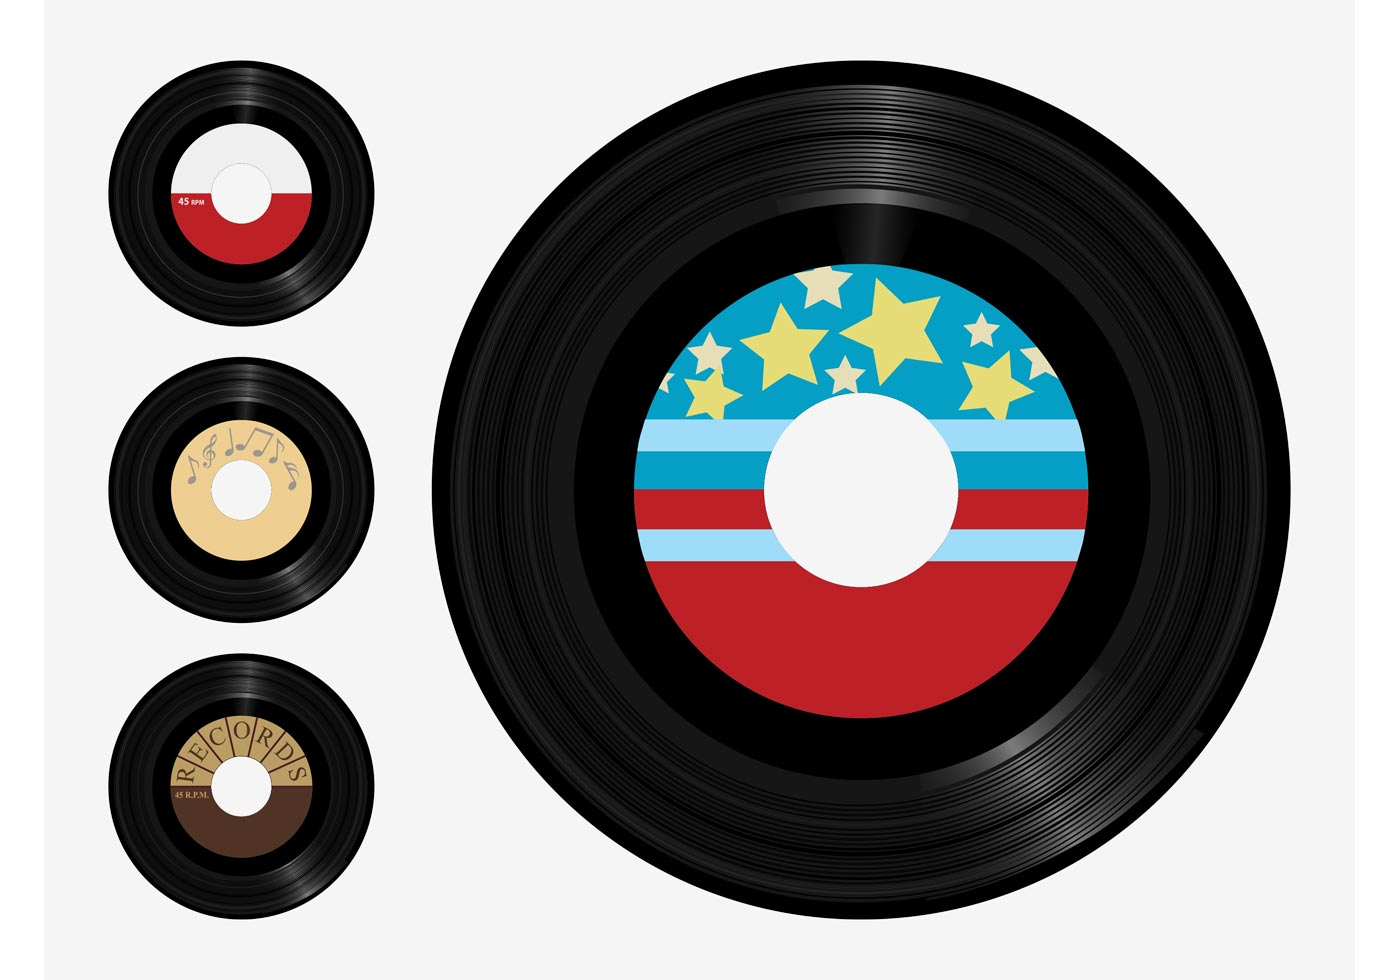 Vinyl Records Vector - Download Free Vector Art, Stock ...